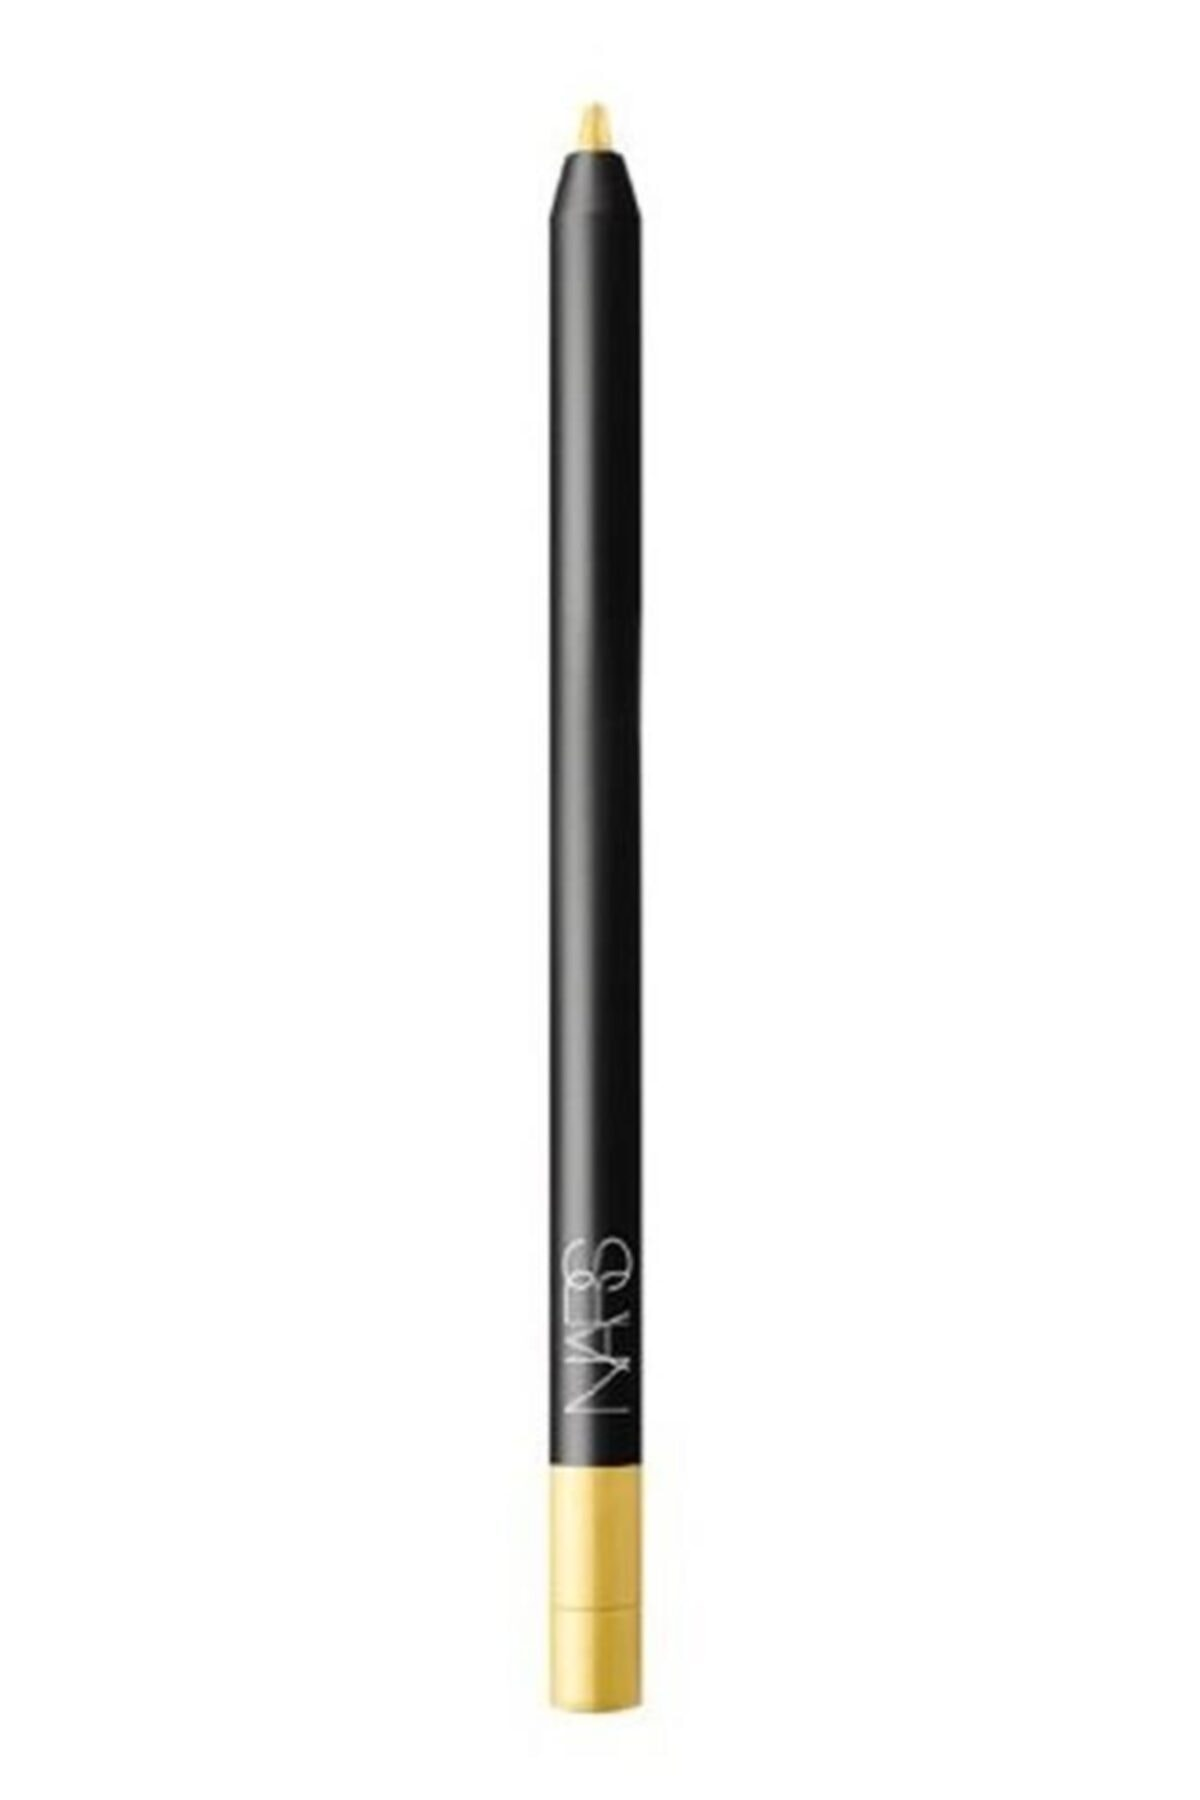 Nars Larger Than Life Long Wear Eyeliner 8067 Göz Kalemi 1